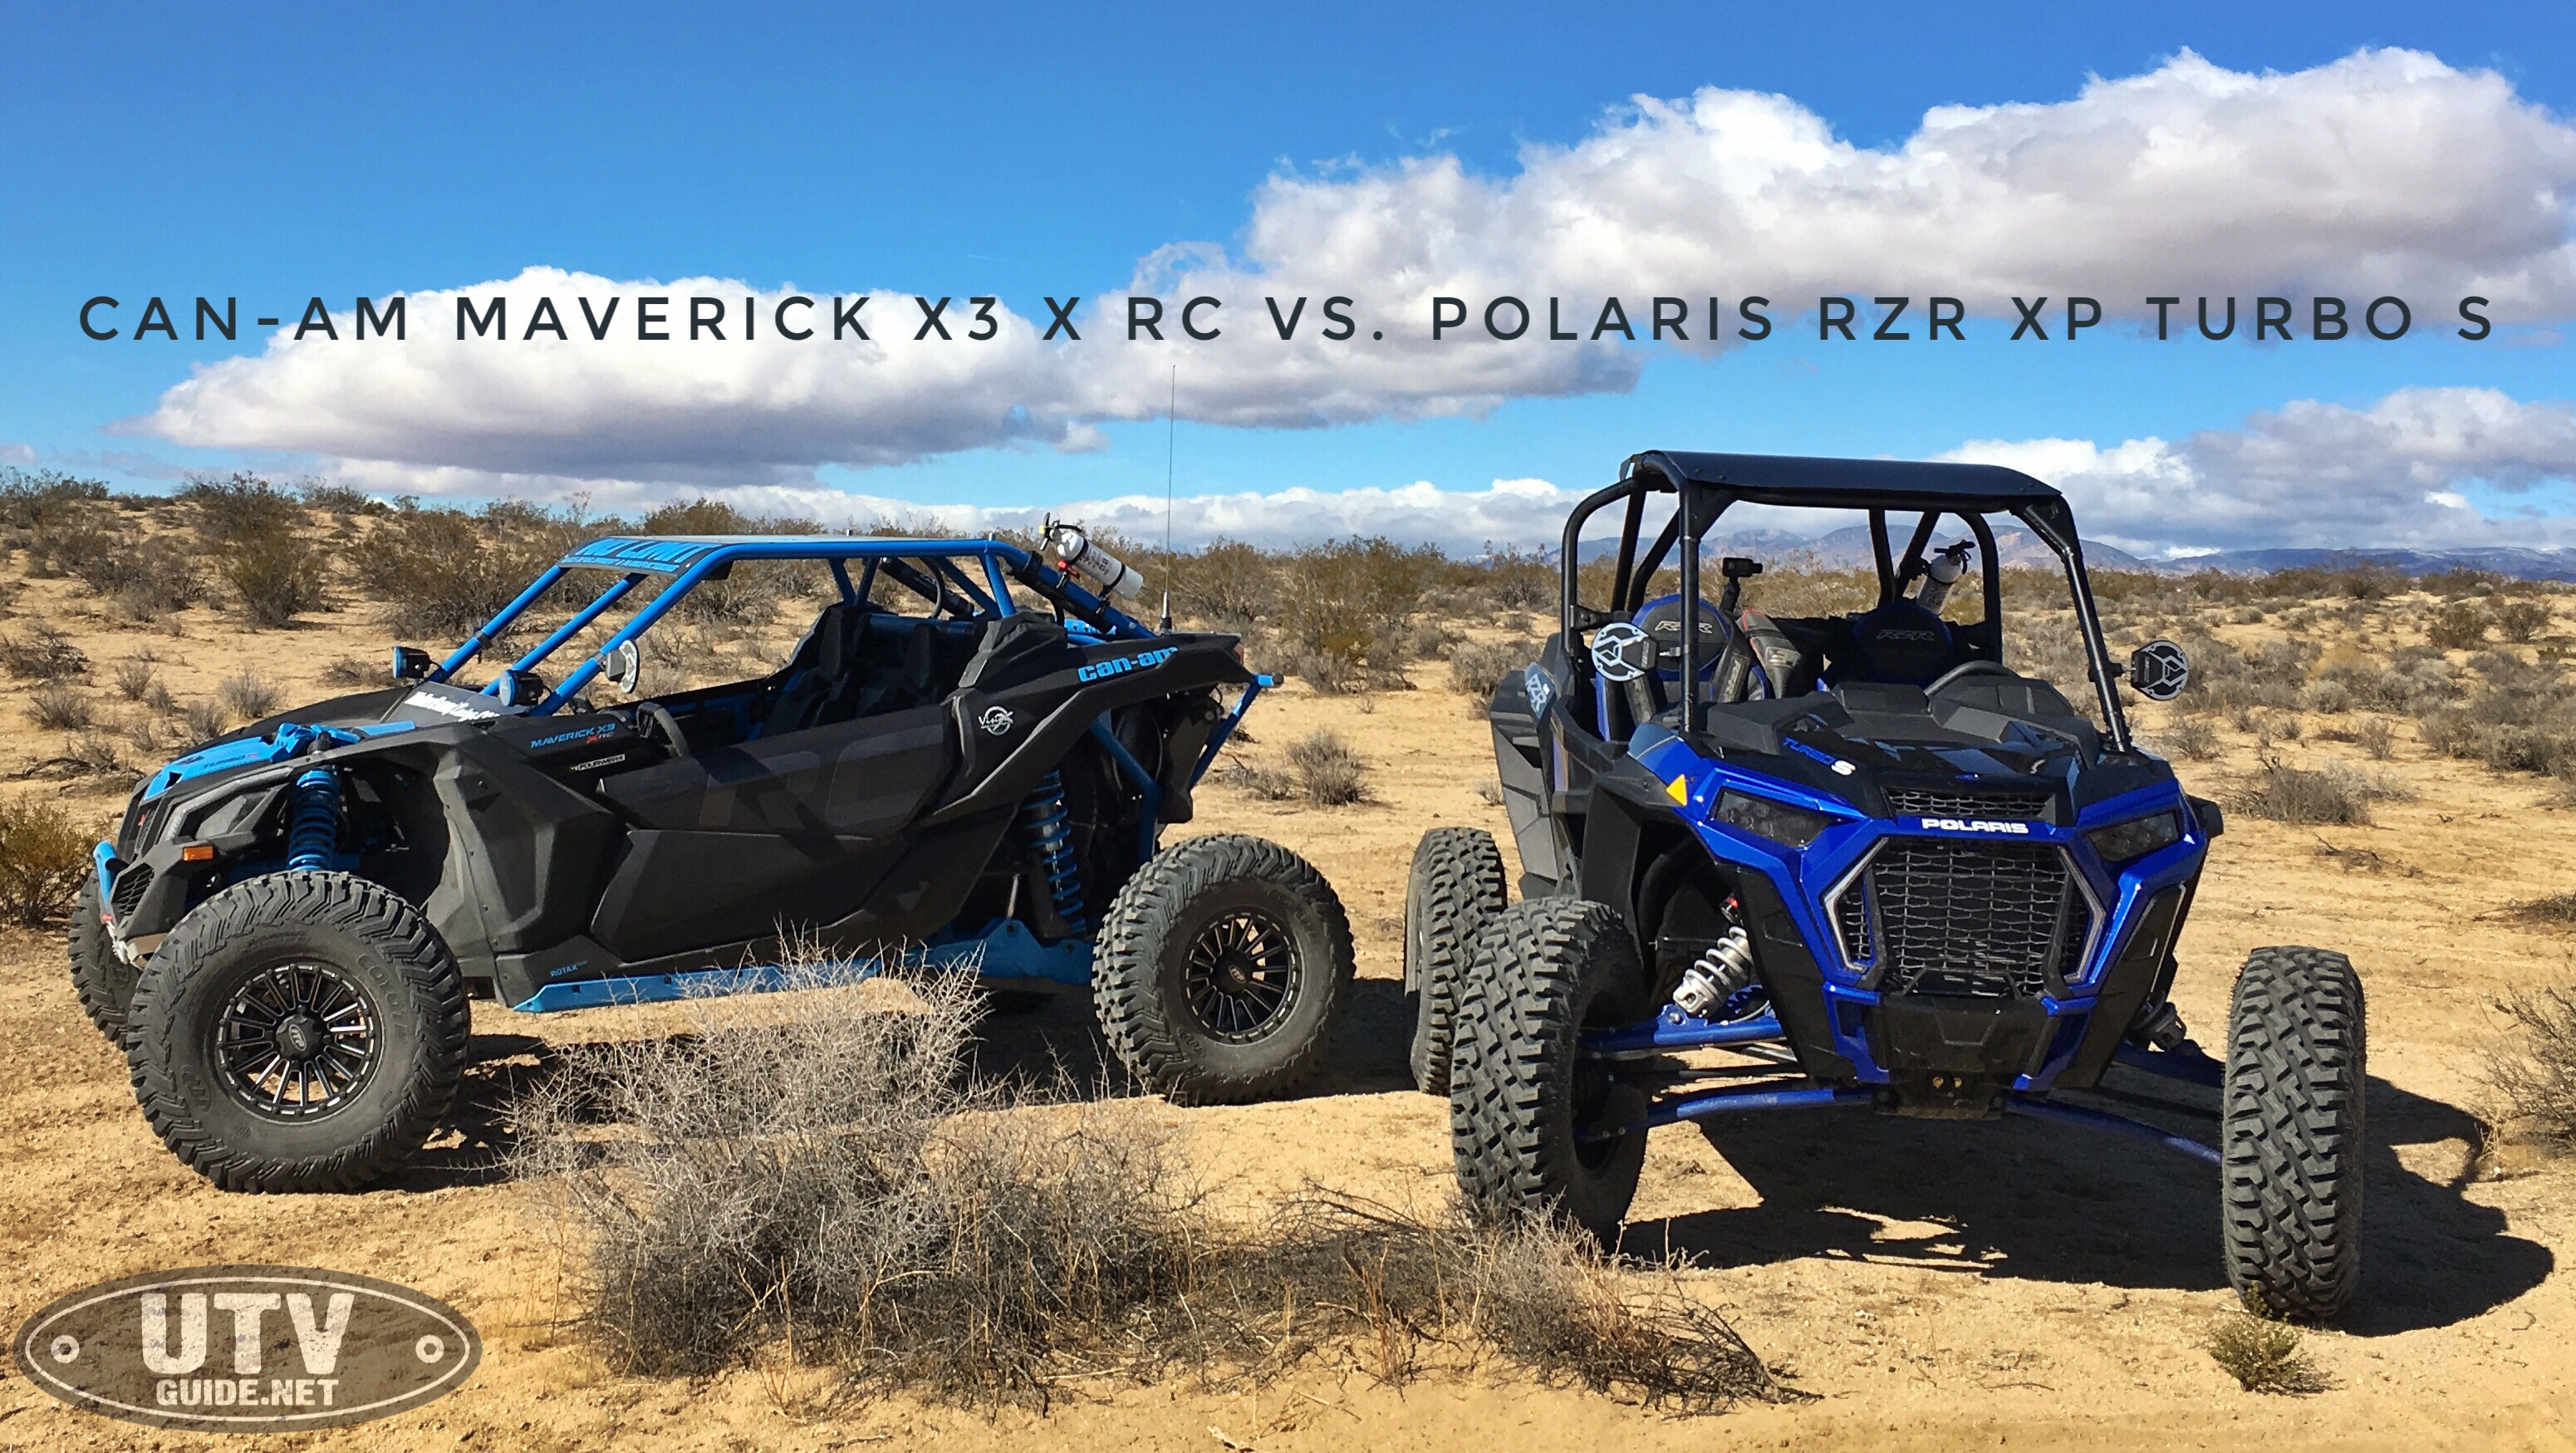 CAN-AM MAVERICK X3 X RC VS POLARIS RZR XP TURBO S - UTV Guide